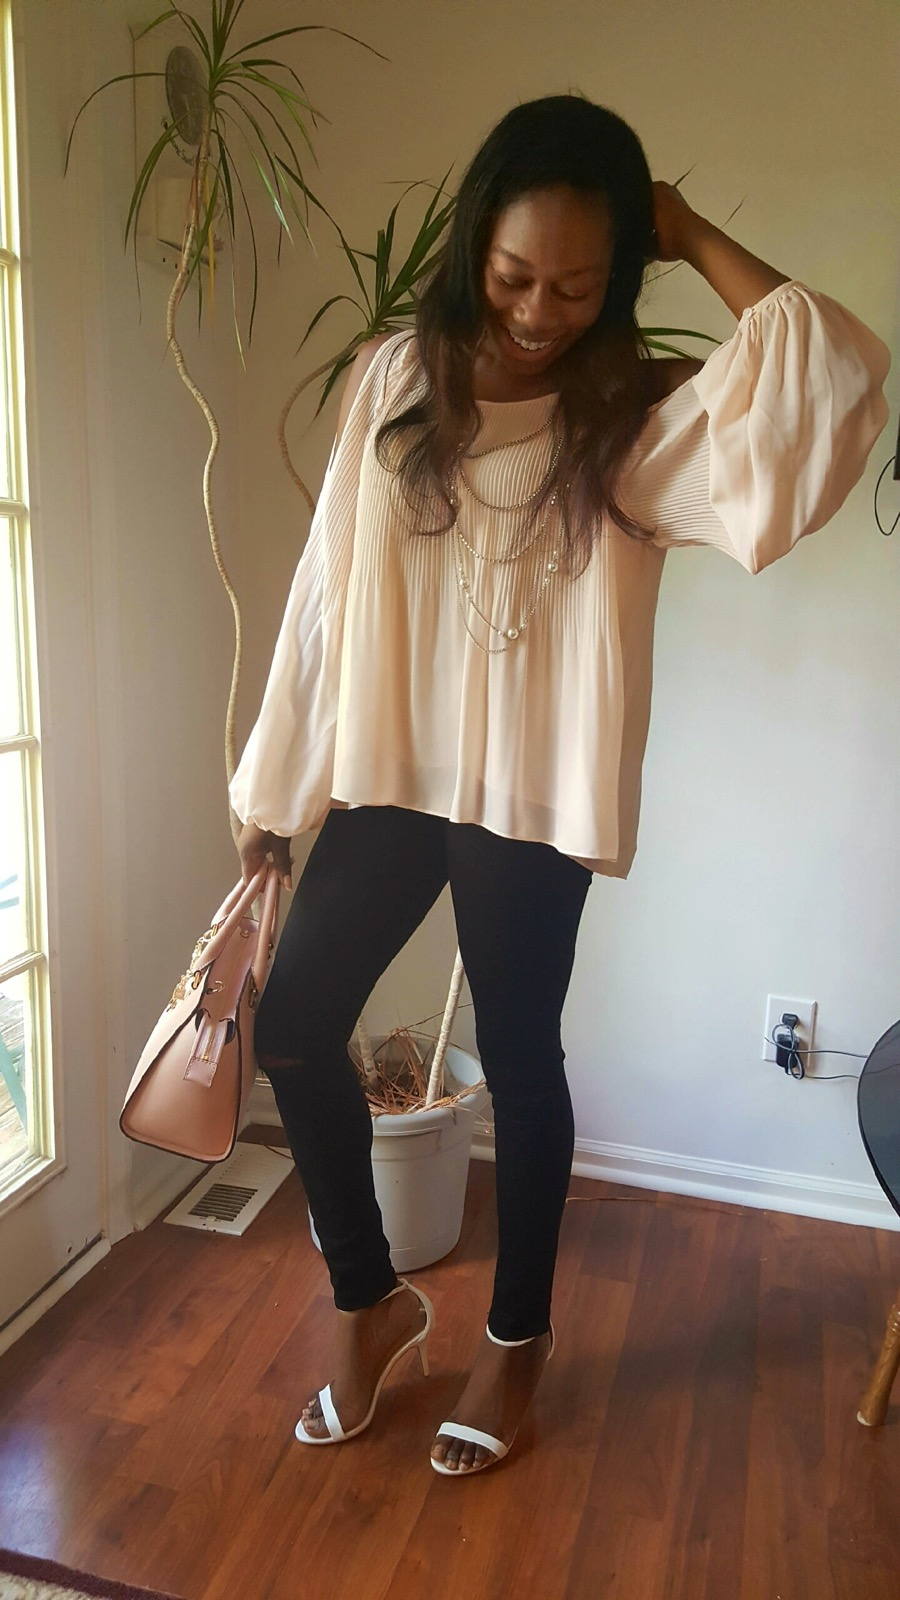 e911ffc2275a9c ASTR Pleated Cold Shoulder Top      Topshop Moto Leigh Ripped Skinny Jeans       JustFab Rosey White Sandals      Michael Kors Selma Medium Satchel      ...